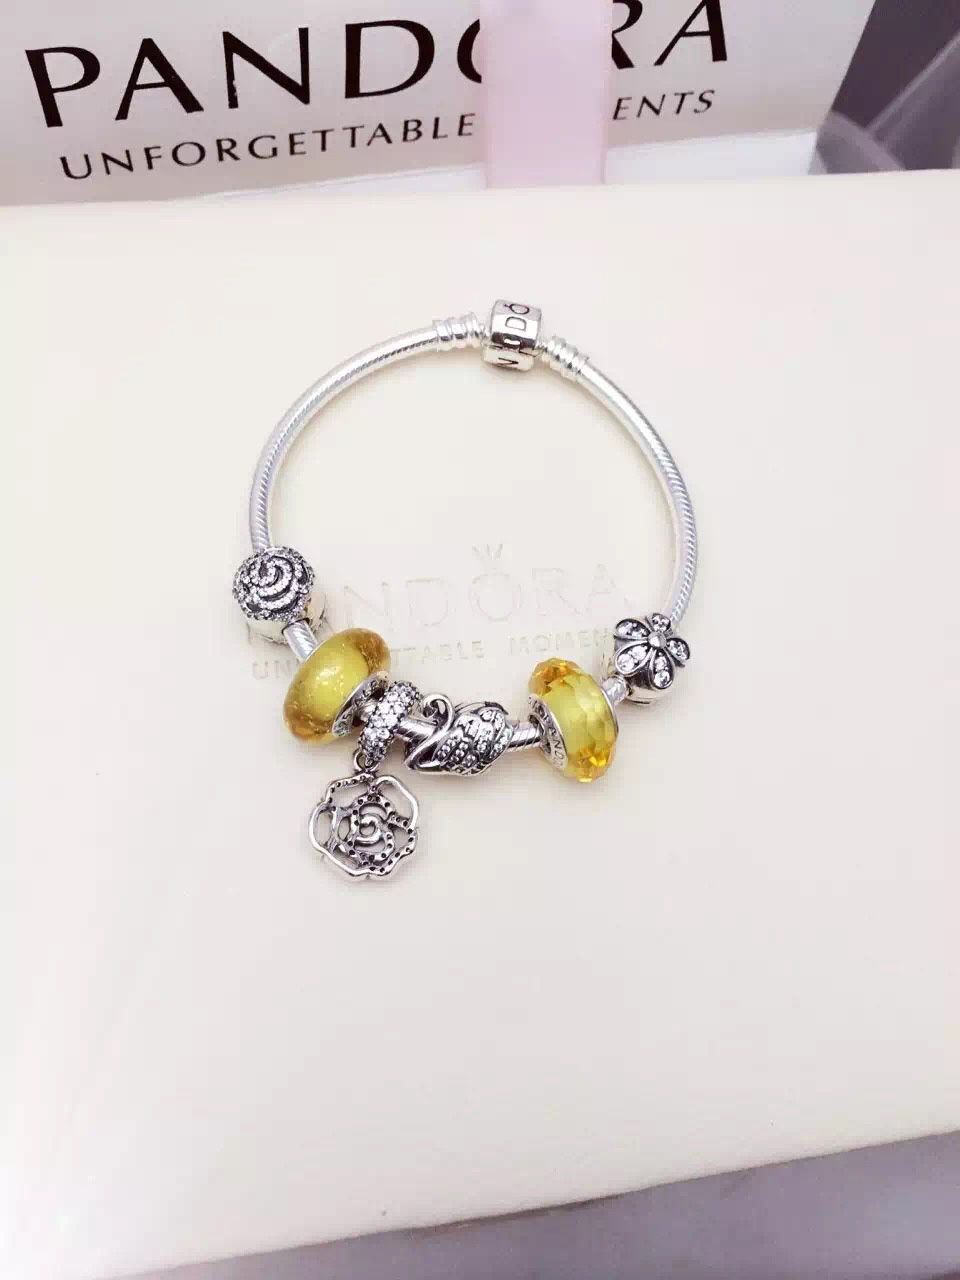 ffdbb8b26 ... top quality 179 pandora charm bracelet yellow. hot sale c8ee0 52ecb